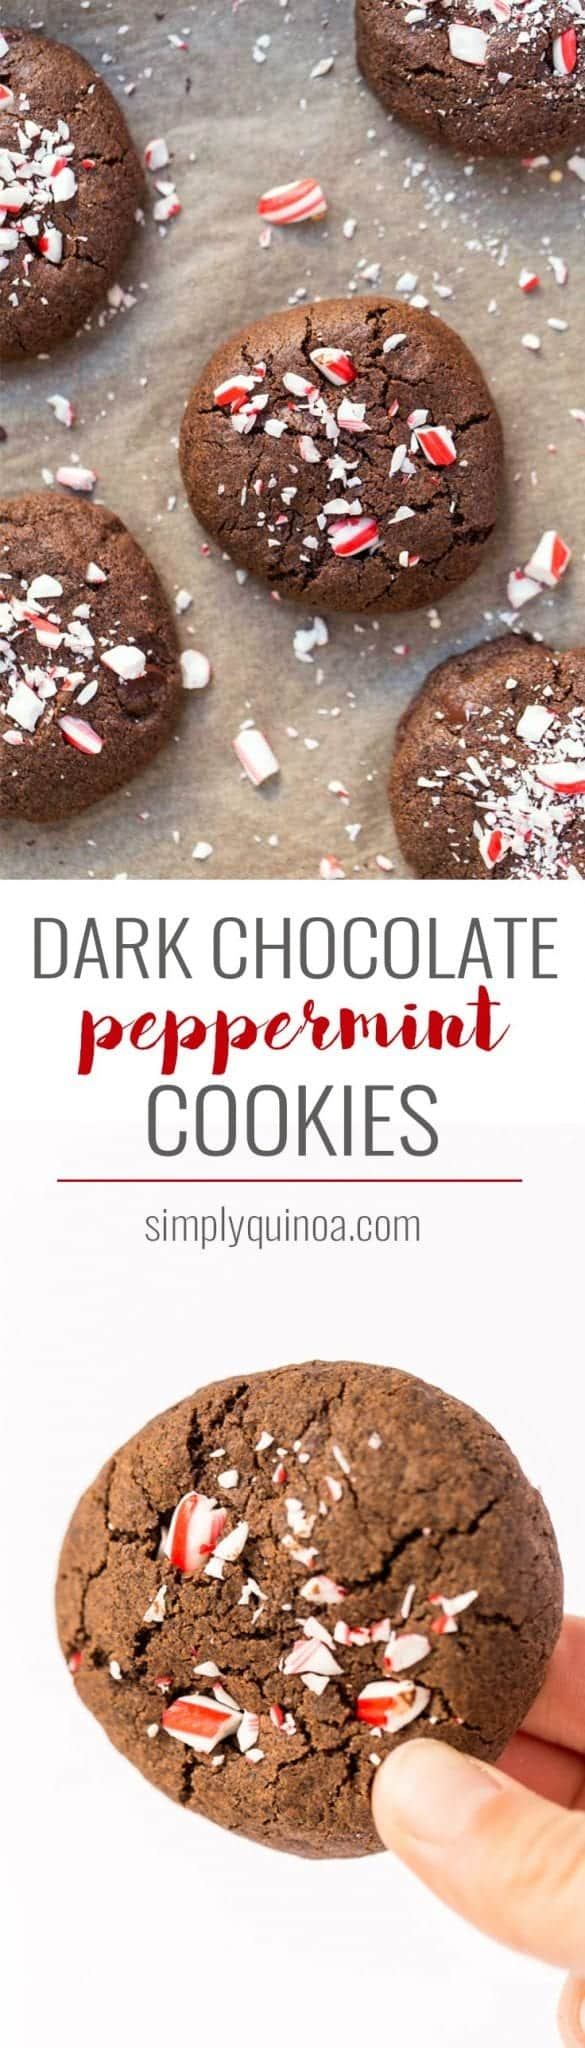 These HEALTHY dark chocolate peppermint cookies are a whole-grain cookie perfect for the holidays! All made WITHOUT gluten, dairy, eggs or refined sugar!